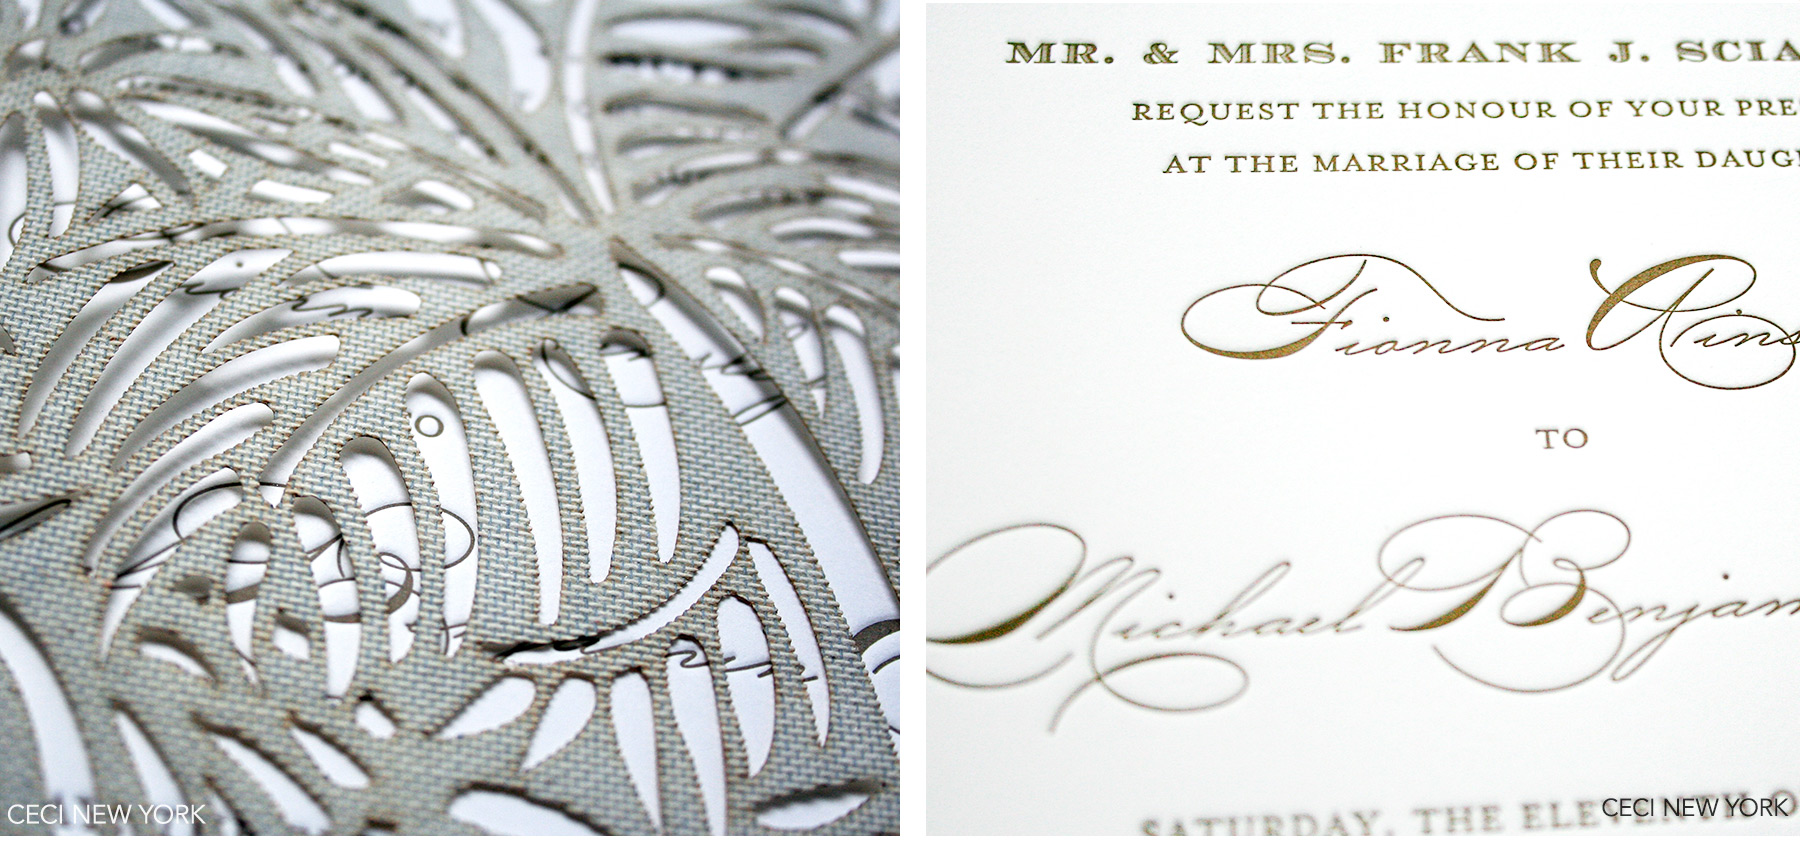 Luxury Wedding Invitations by Ceci New York - Our Muse - Luxe Beach Wedding in Palm Beach: Fiona and Michael, Part 1 - Be inspired by Fiona and Miachel's luxe beach wedding in Palm Beach, Florida. - Ceci New York Luxury Wedding Invitations - custom wedding invitations, luxury wedding invitations, couture, palm beach, florida, ceci new york